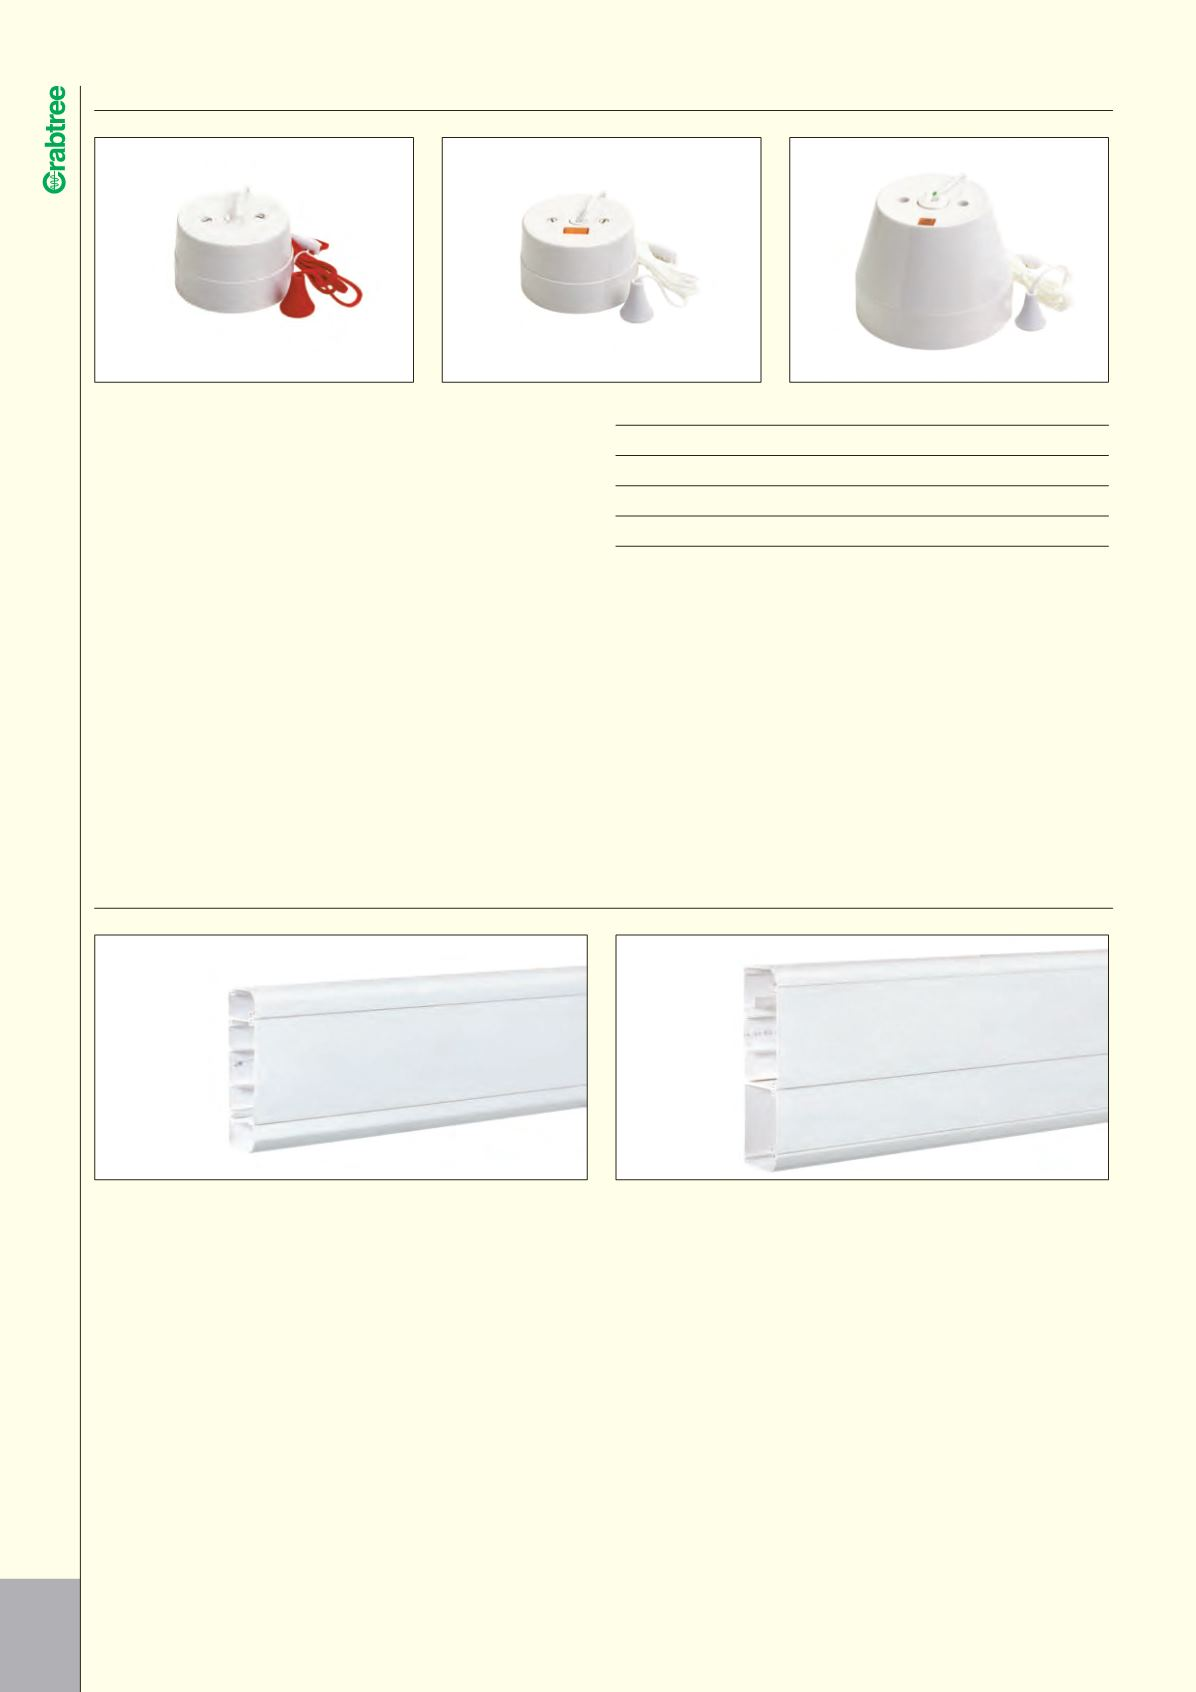 Crabtree Electrical Wiring Accessories Iee Regs Page Background